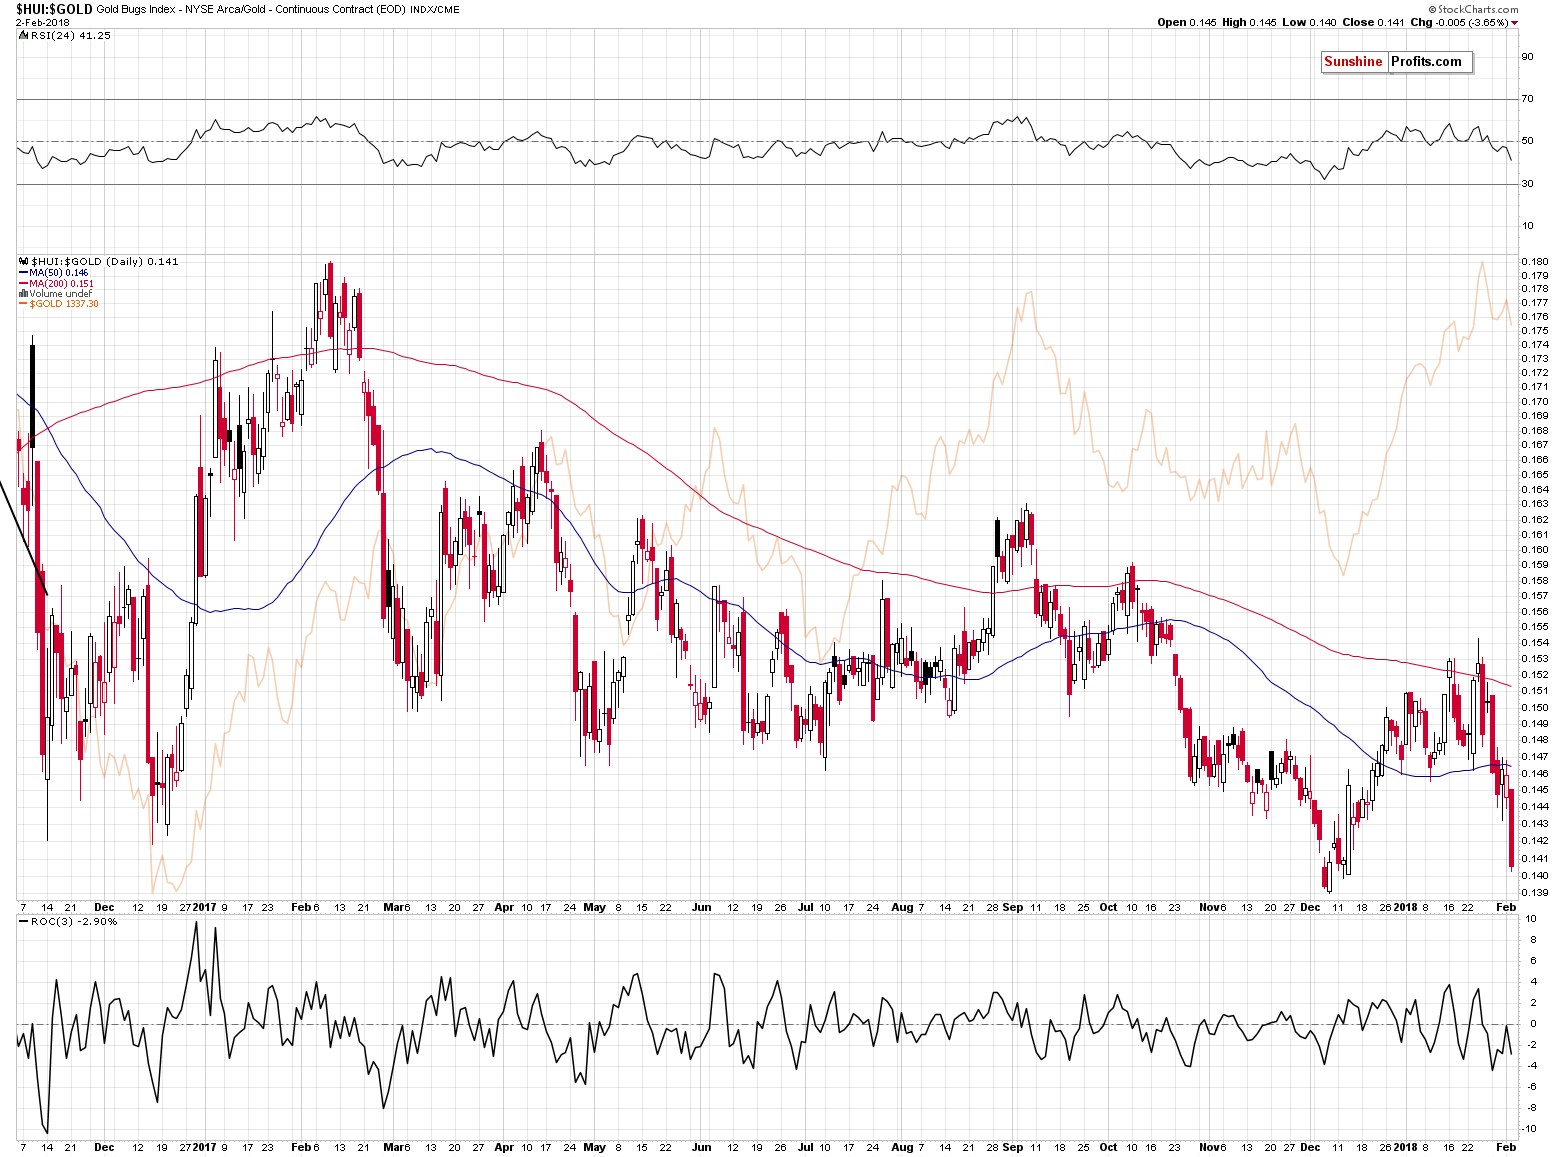 HUI:GOLD - Gold stocks to Gold ratio chart